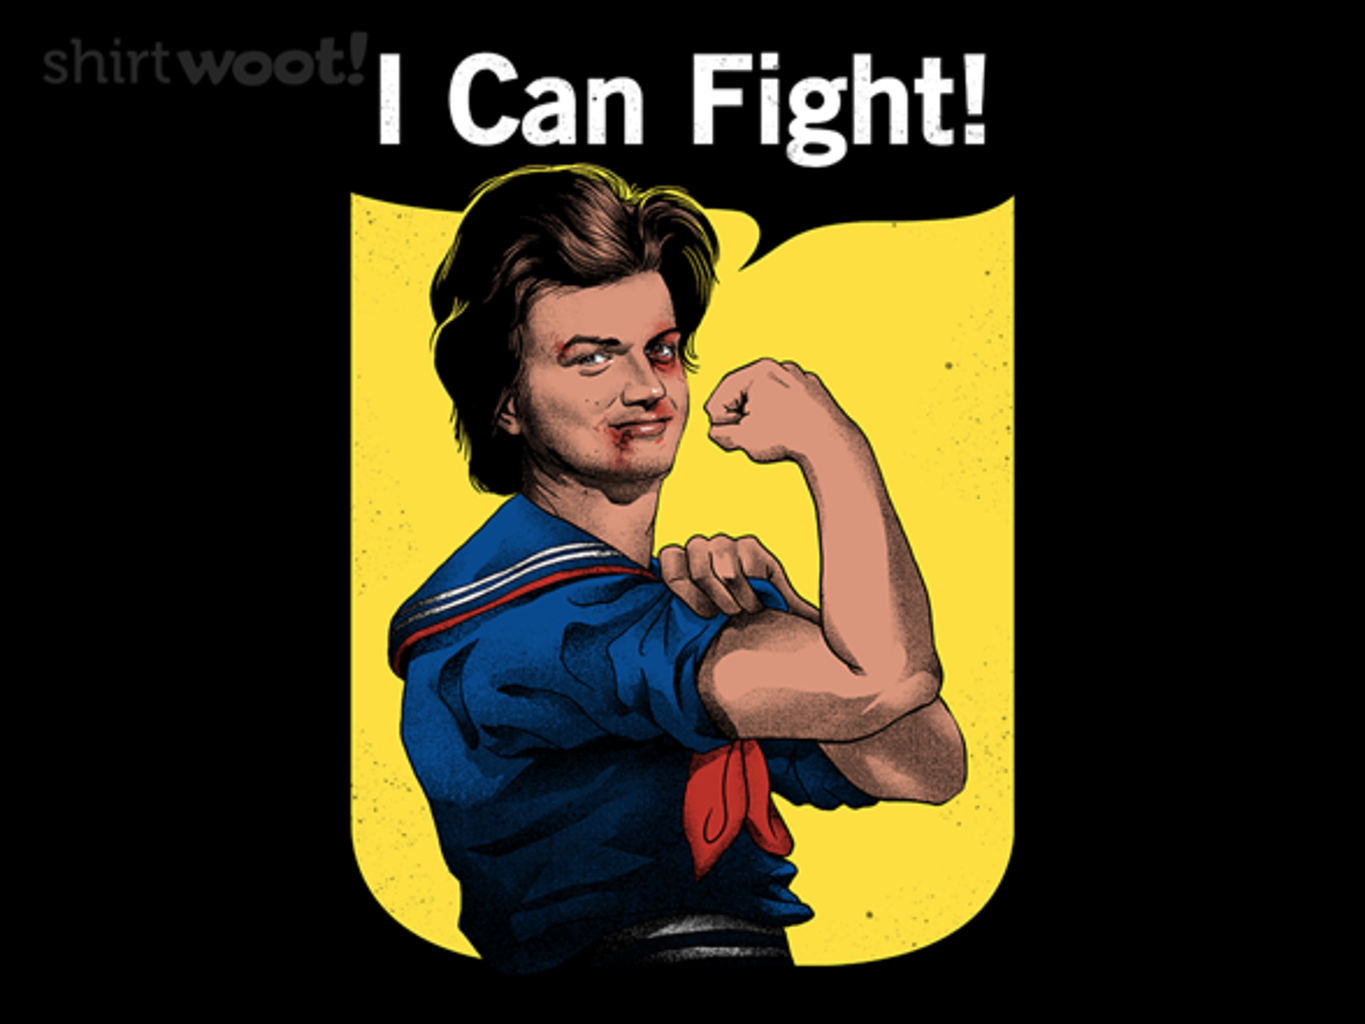 Woot!: I Can Fight!